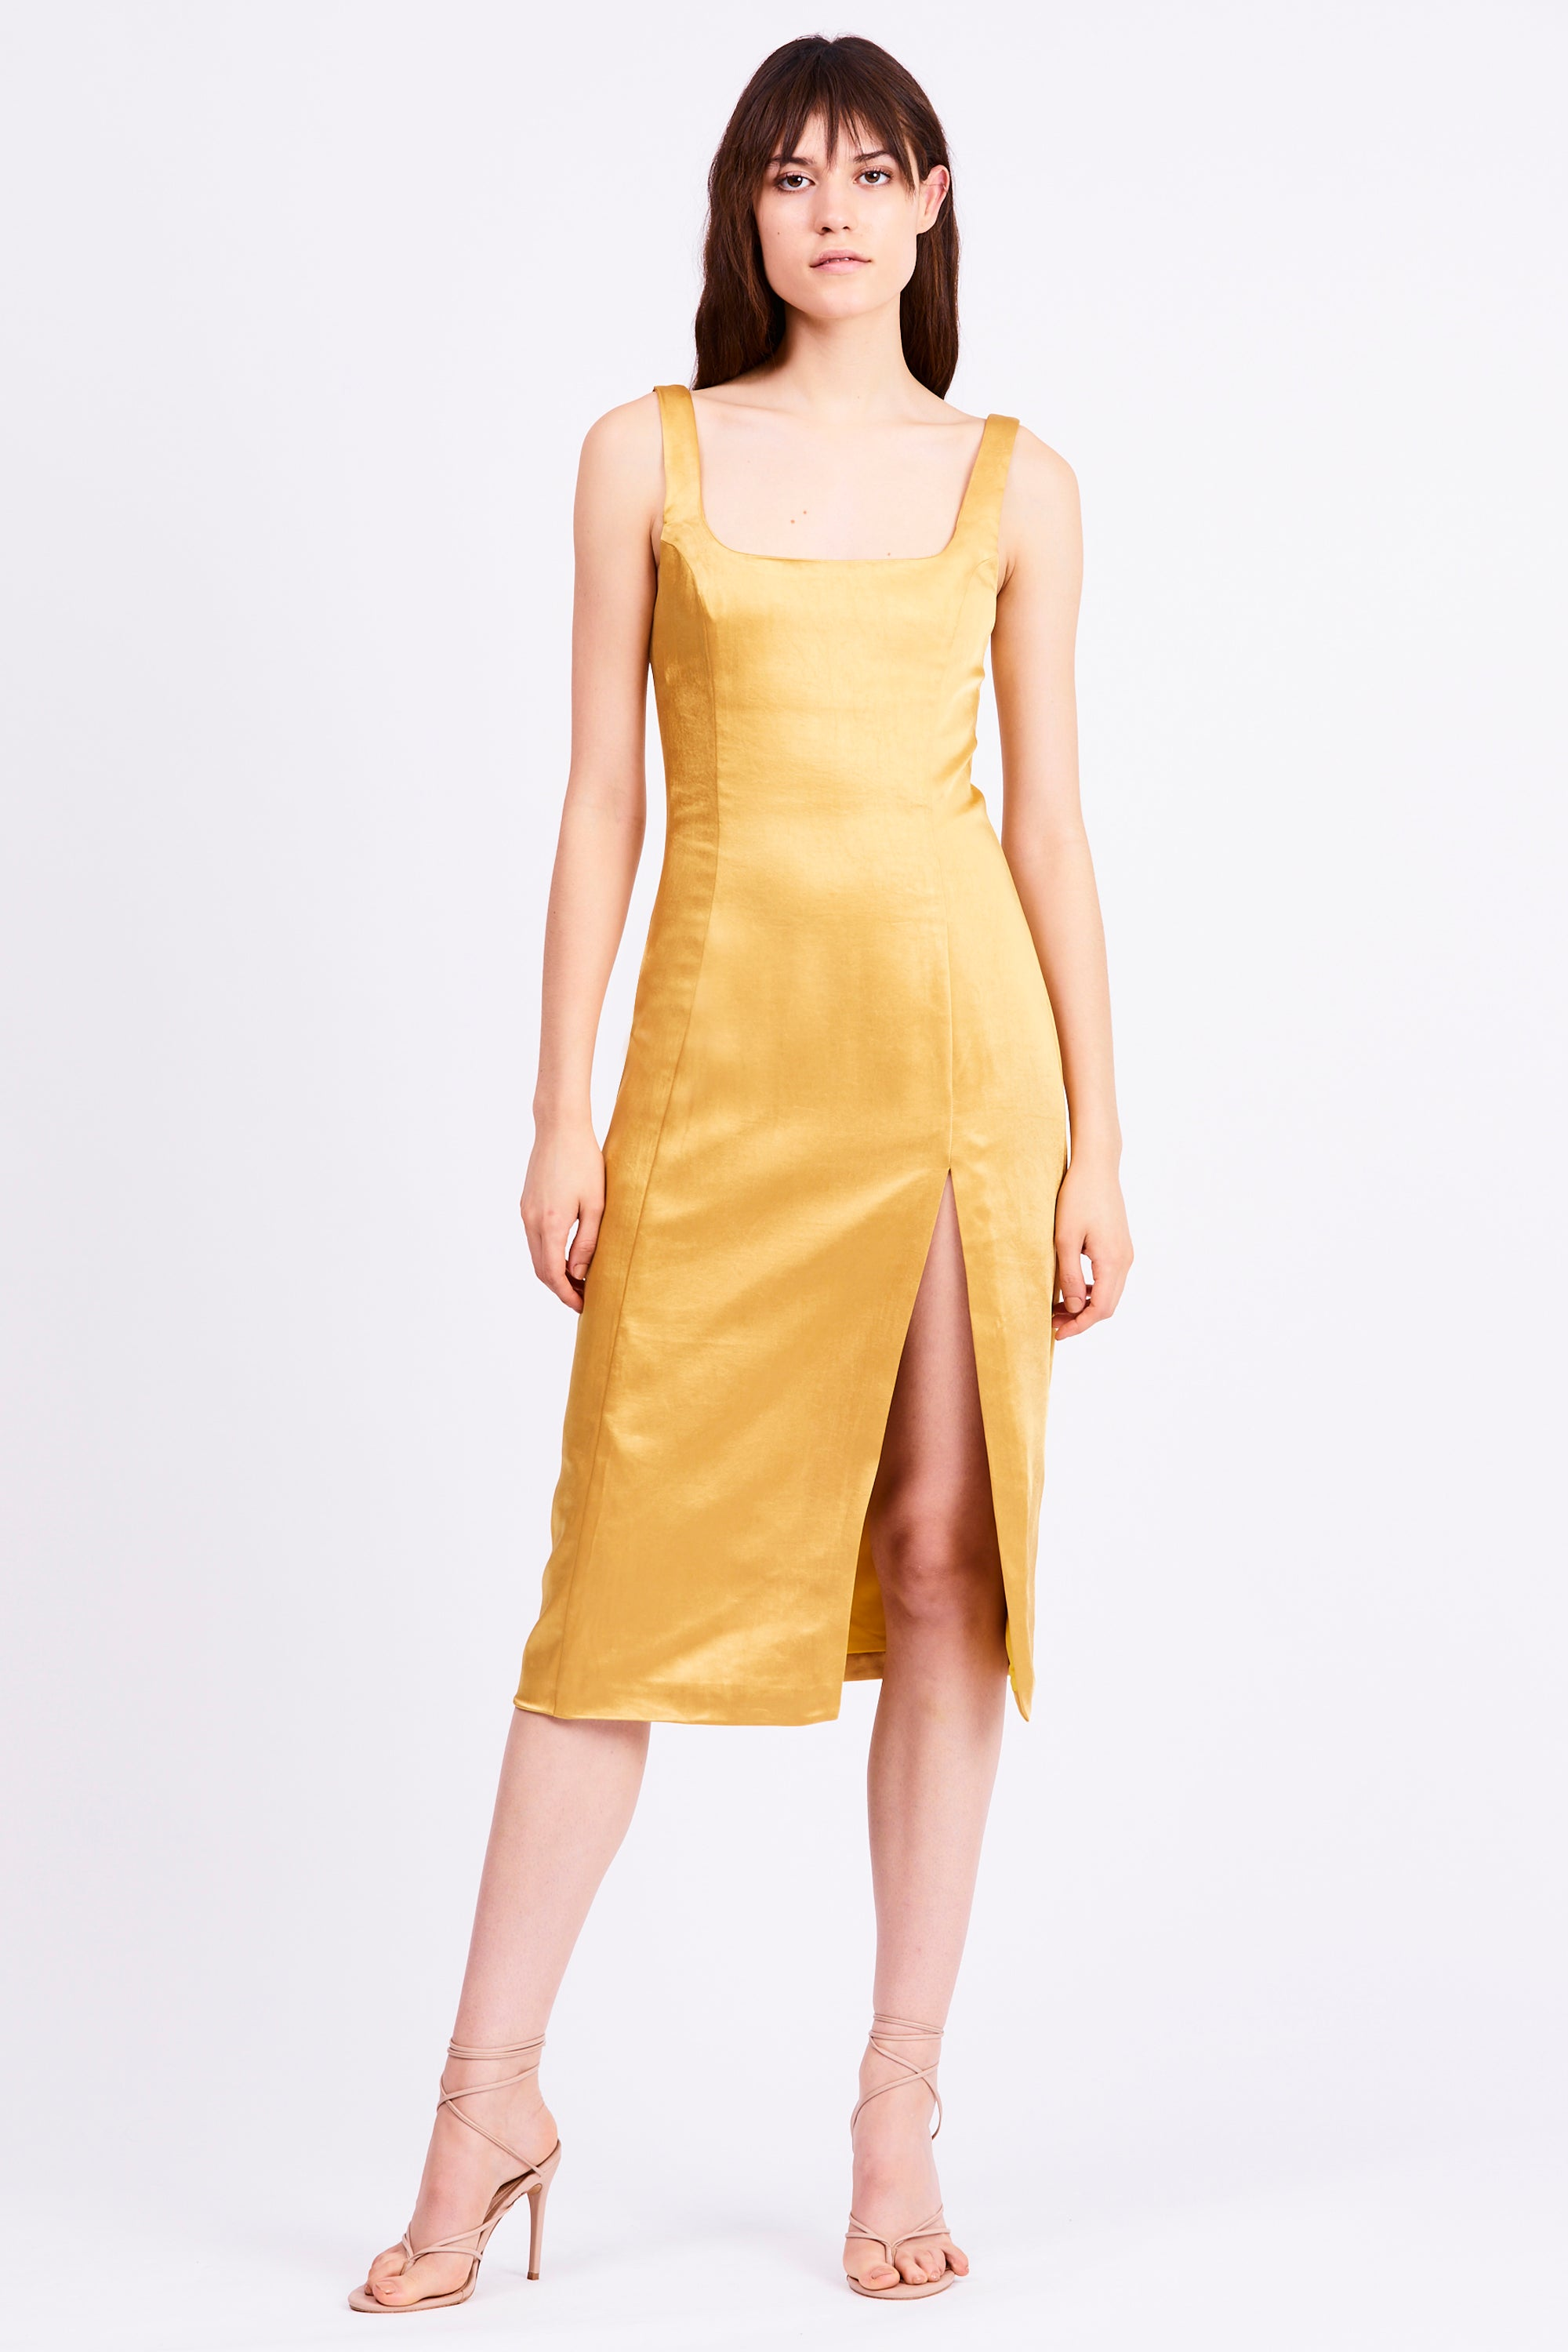 FINAL SAY SPLIT DRESS | CANARY